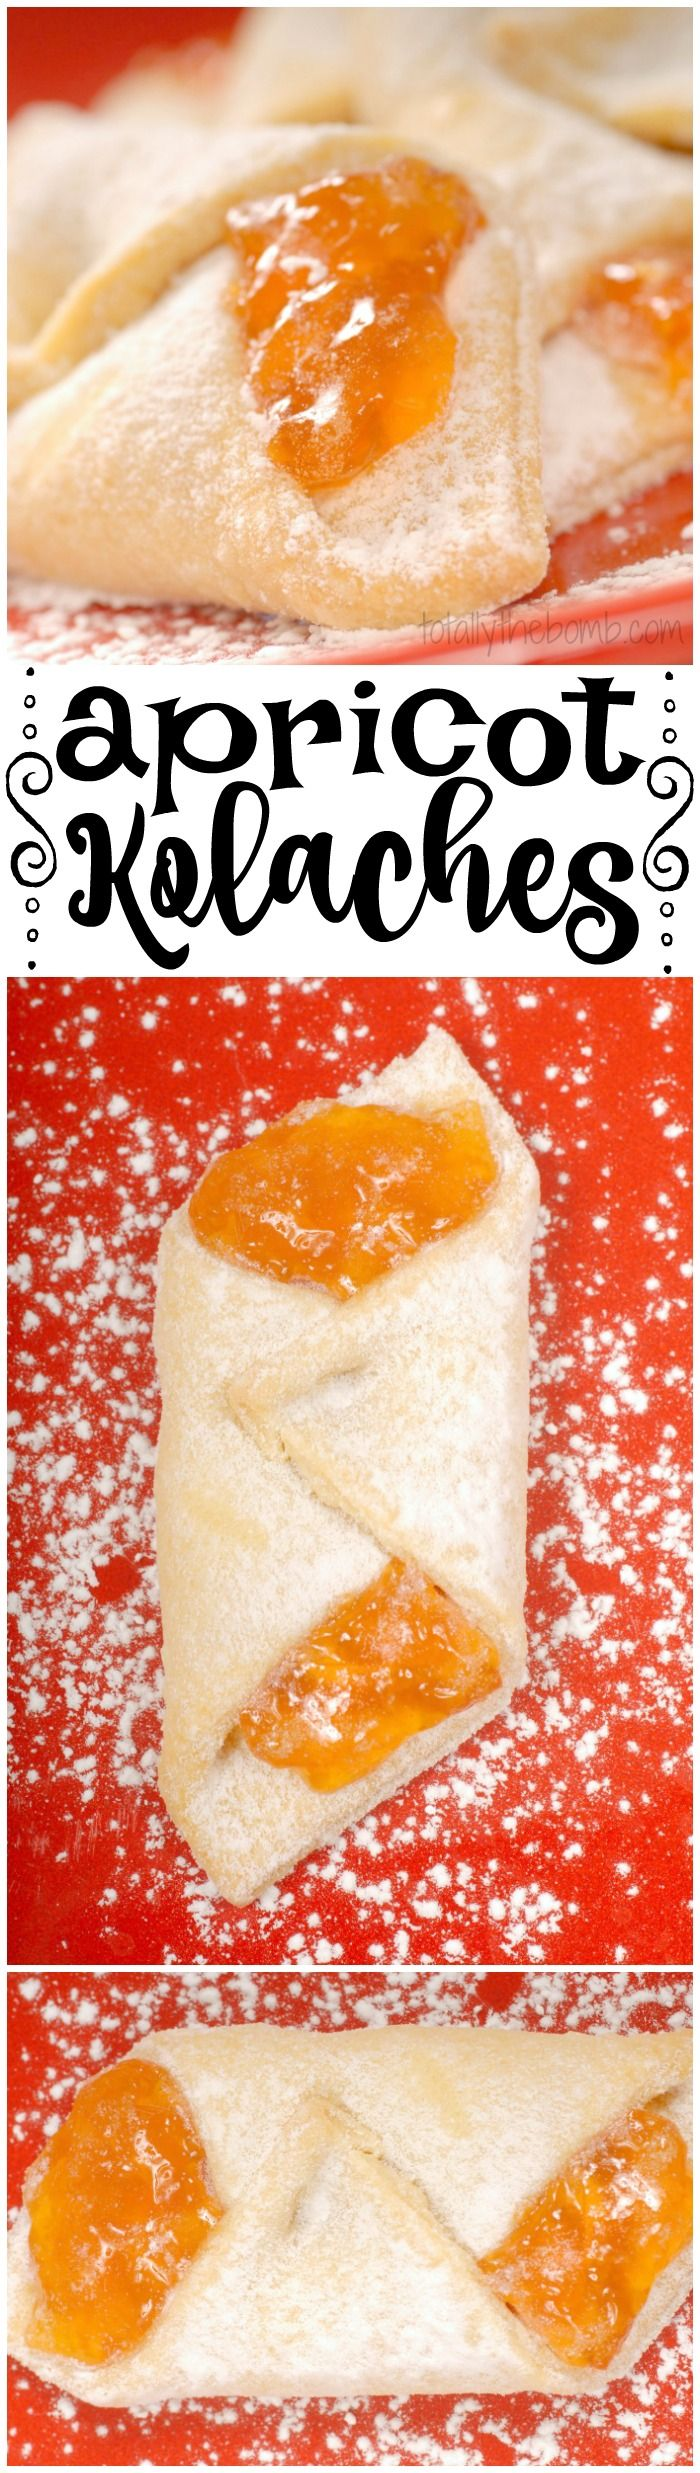 These apricot kolaches are completely delicious in pretty much every way.   #food #kolache #dessert totallythebomb.com